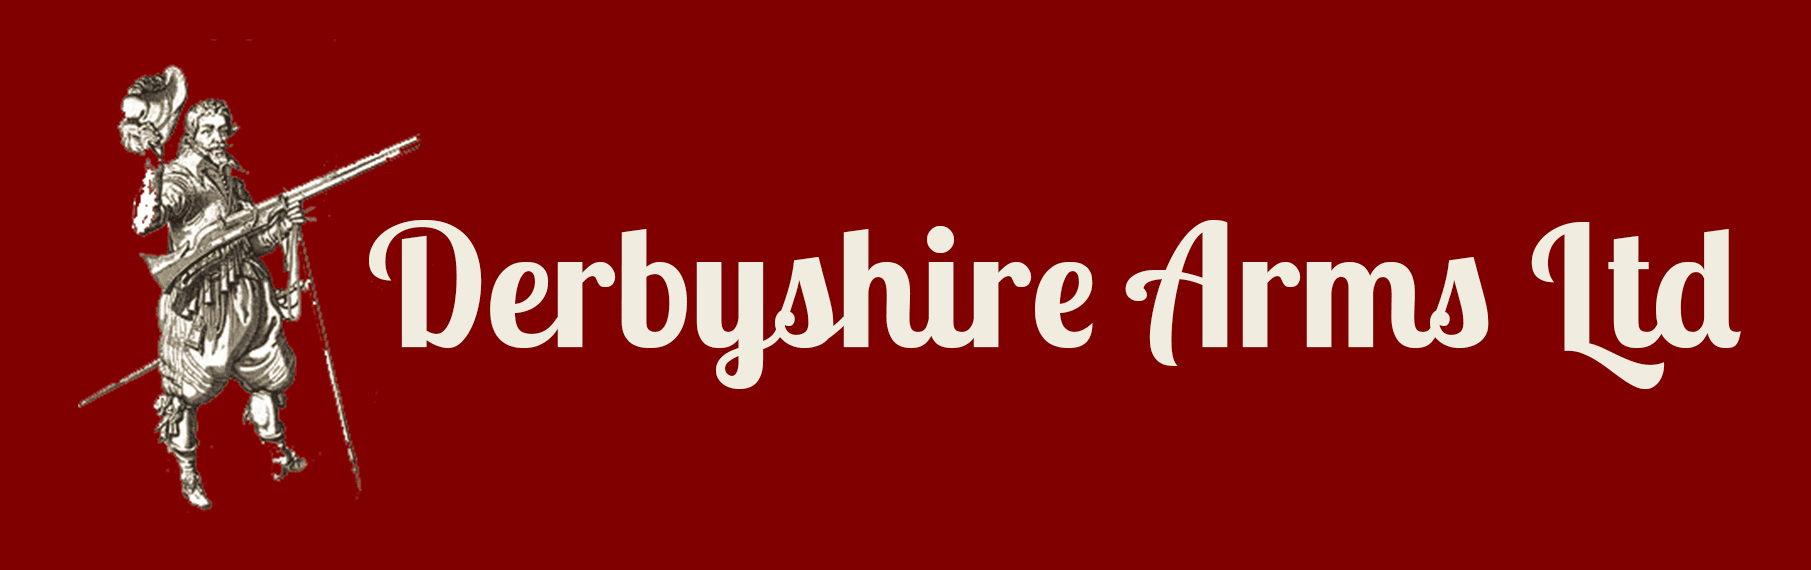 derbshire  logo with text